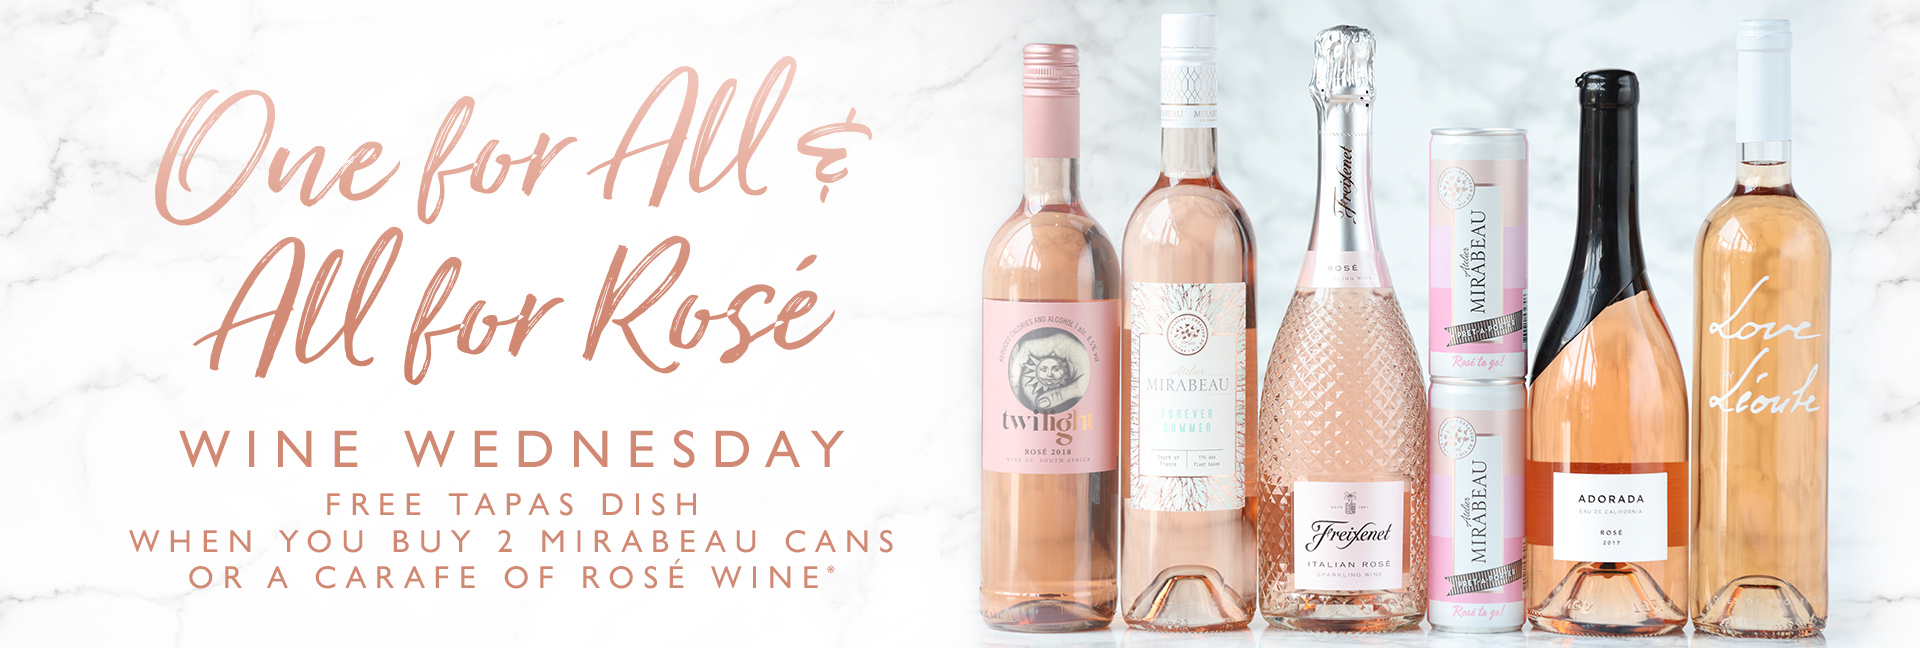 Wine Wednesday at All Bar One Sutton